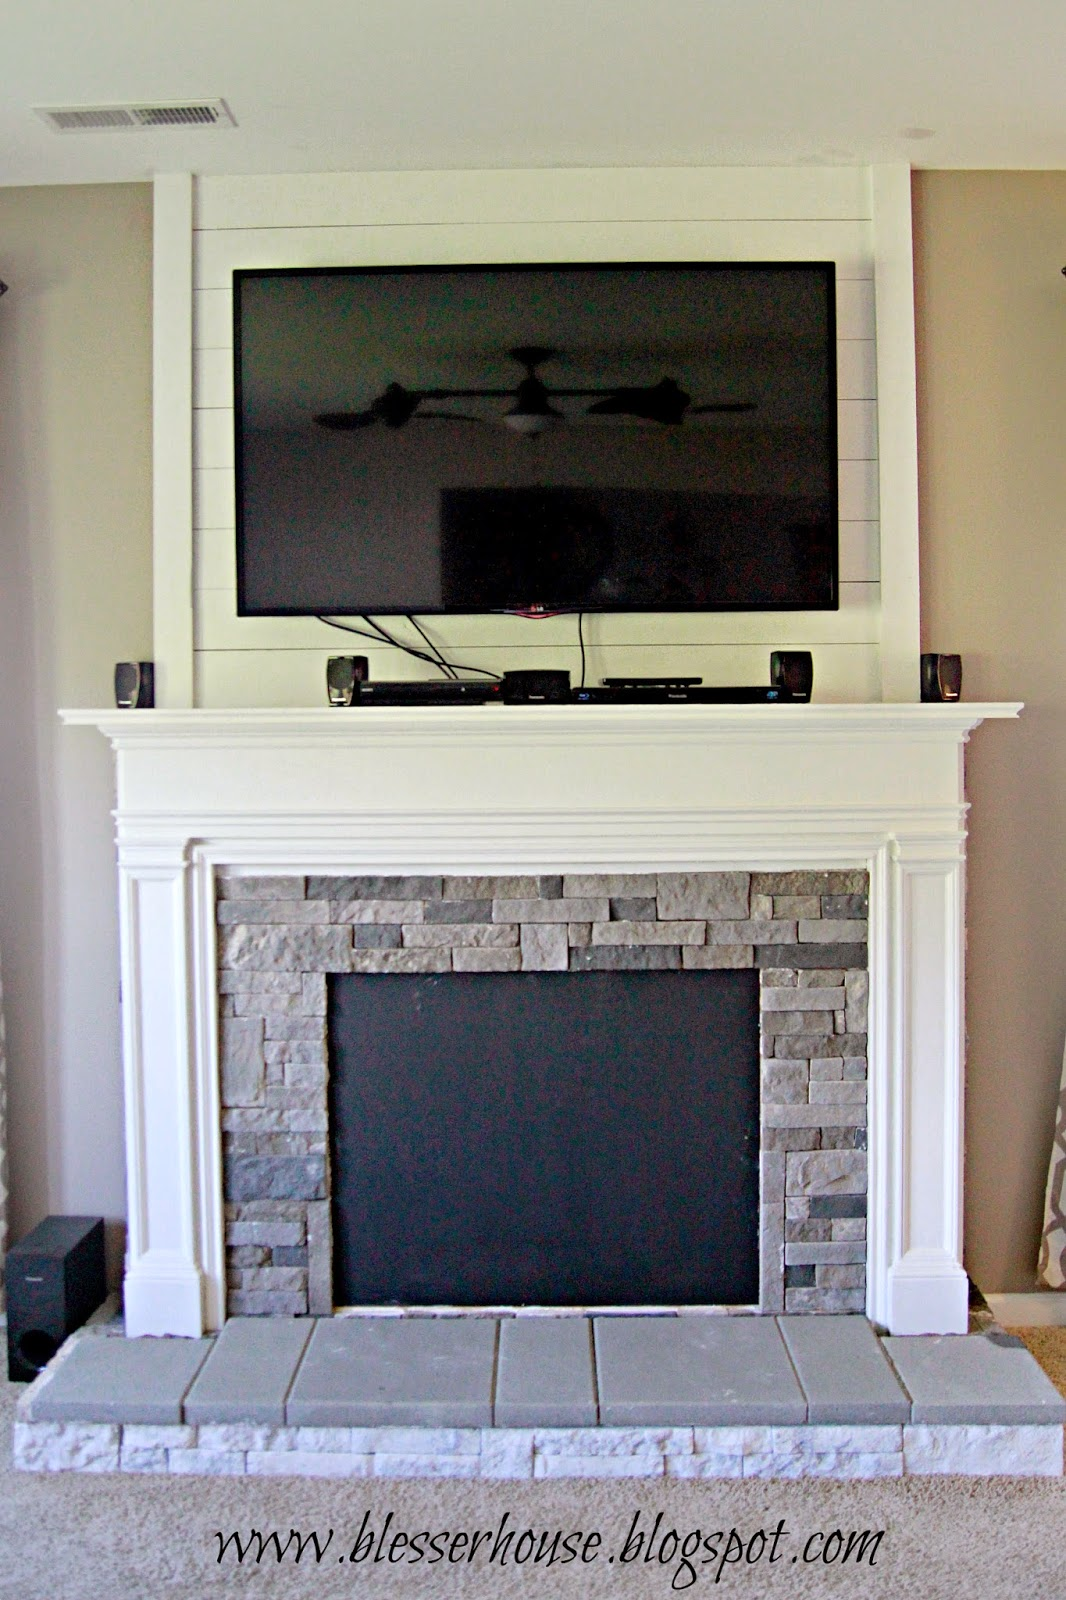 Diy Faux Fireplace Entertainment Center Part 3 Bless Er